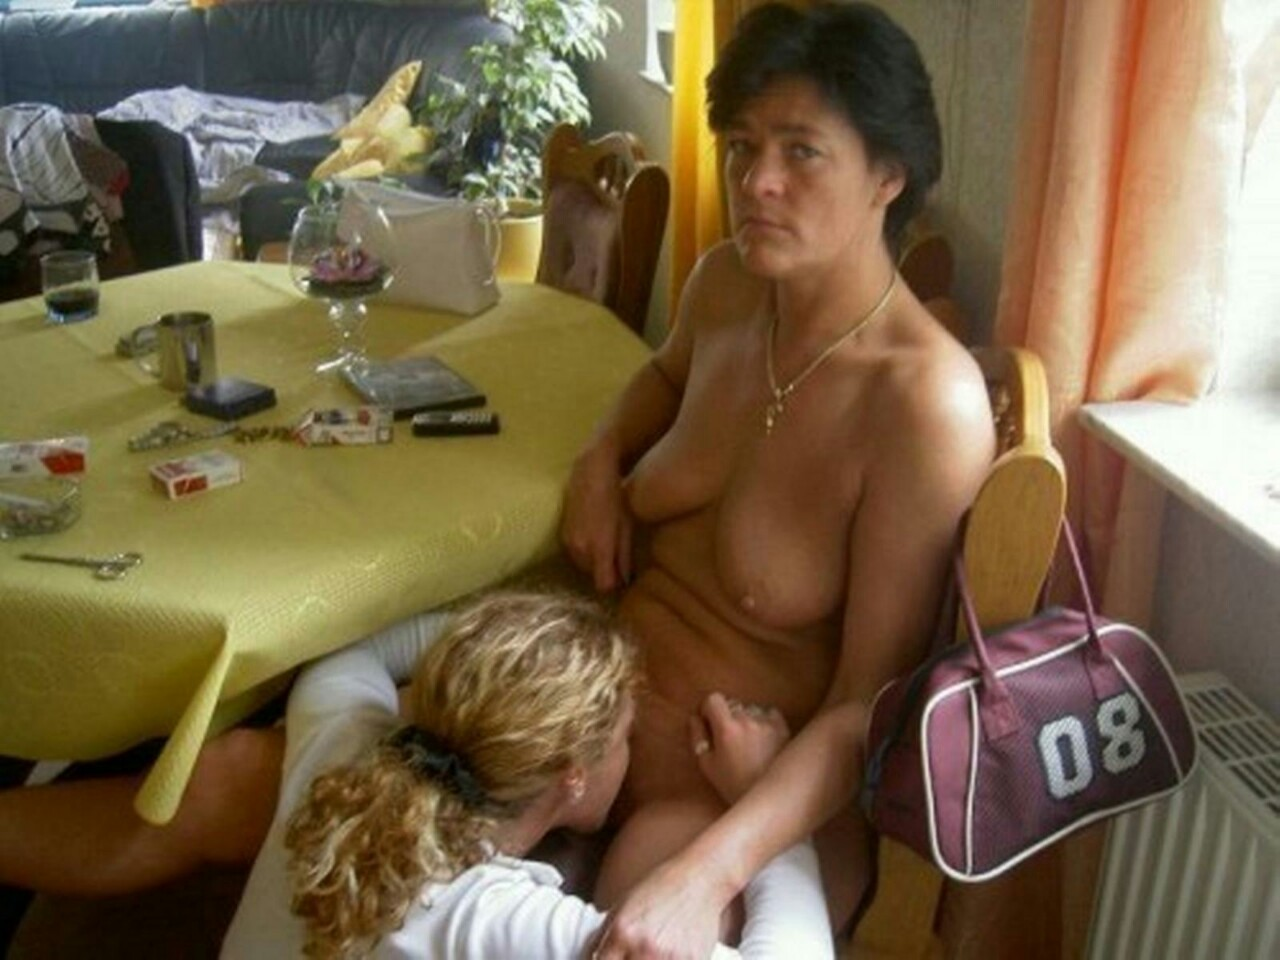 bad nude mom parenting fail $naked family